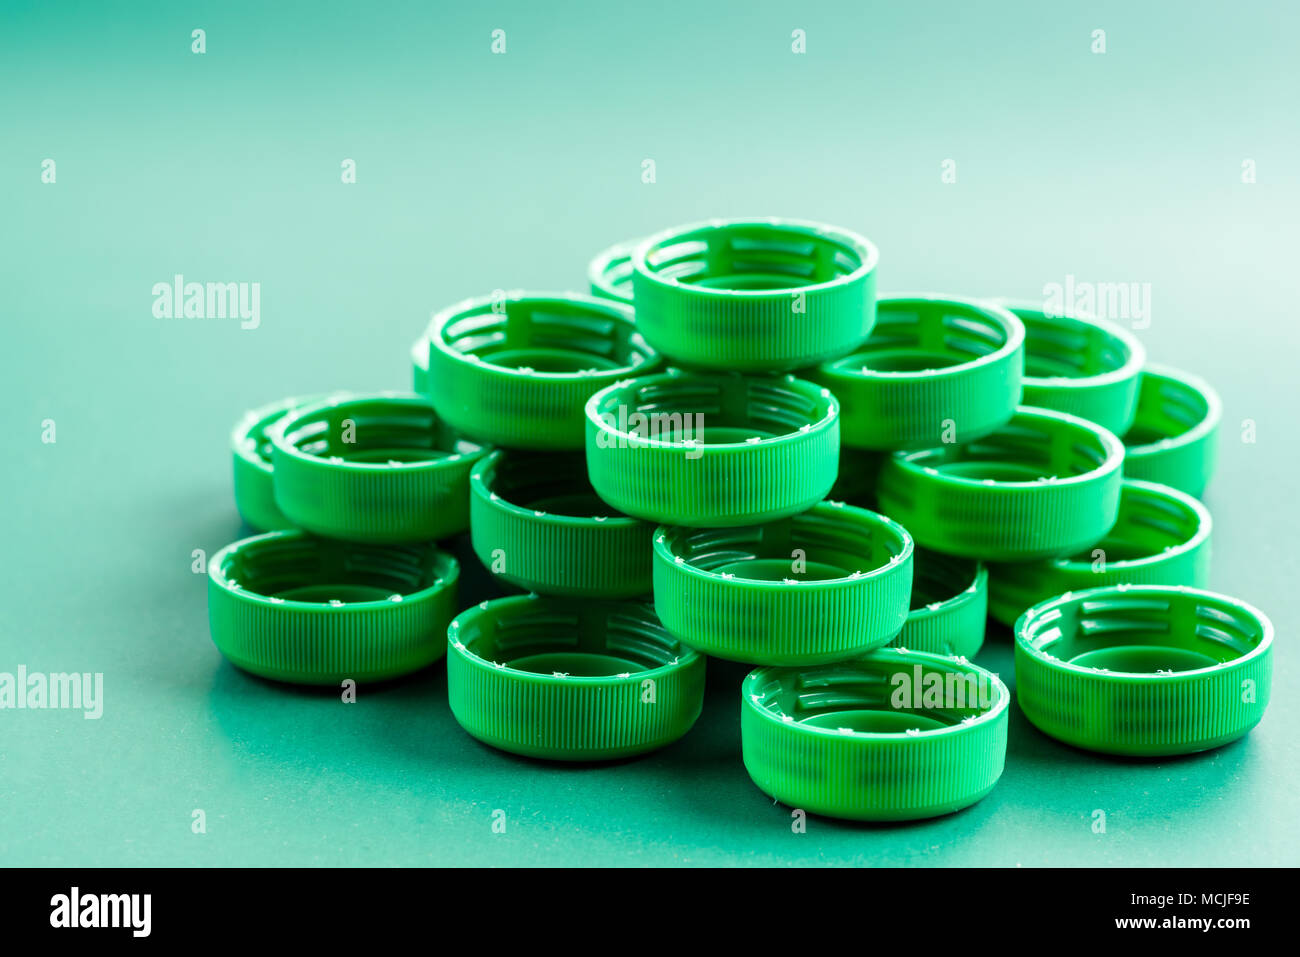 plastic green covers on a green background - Stock Image